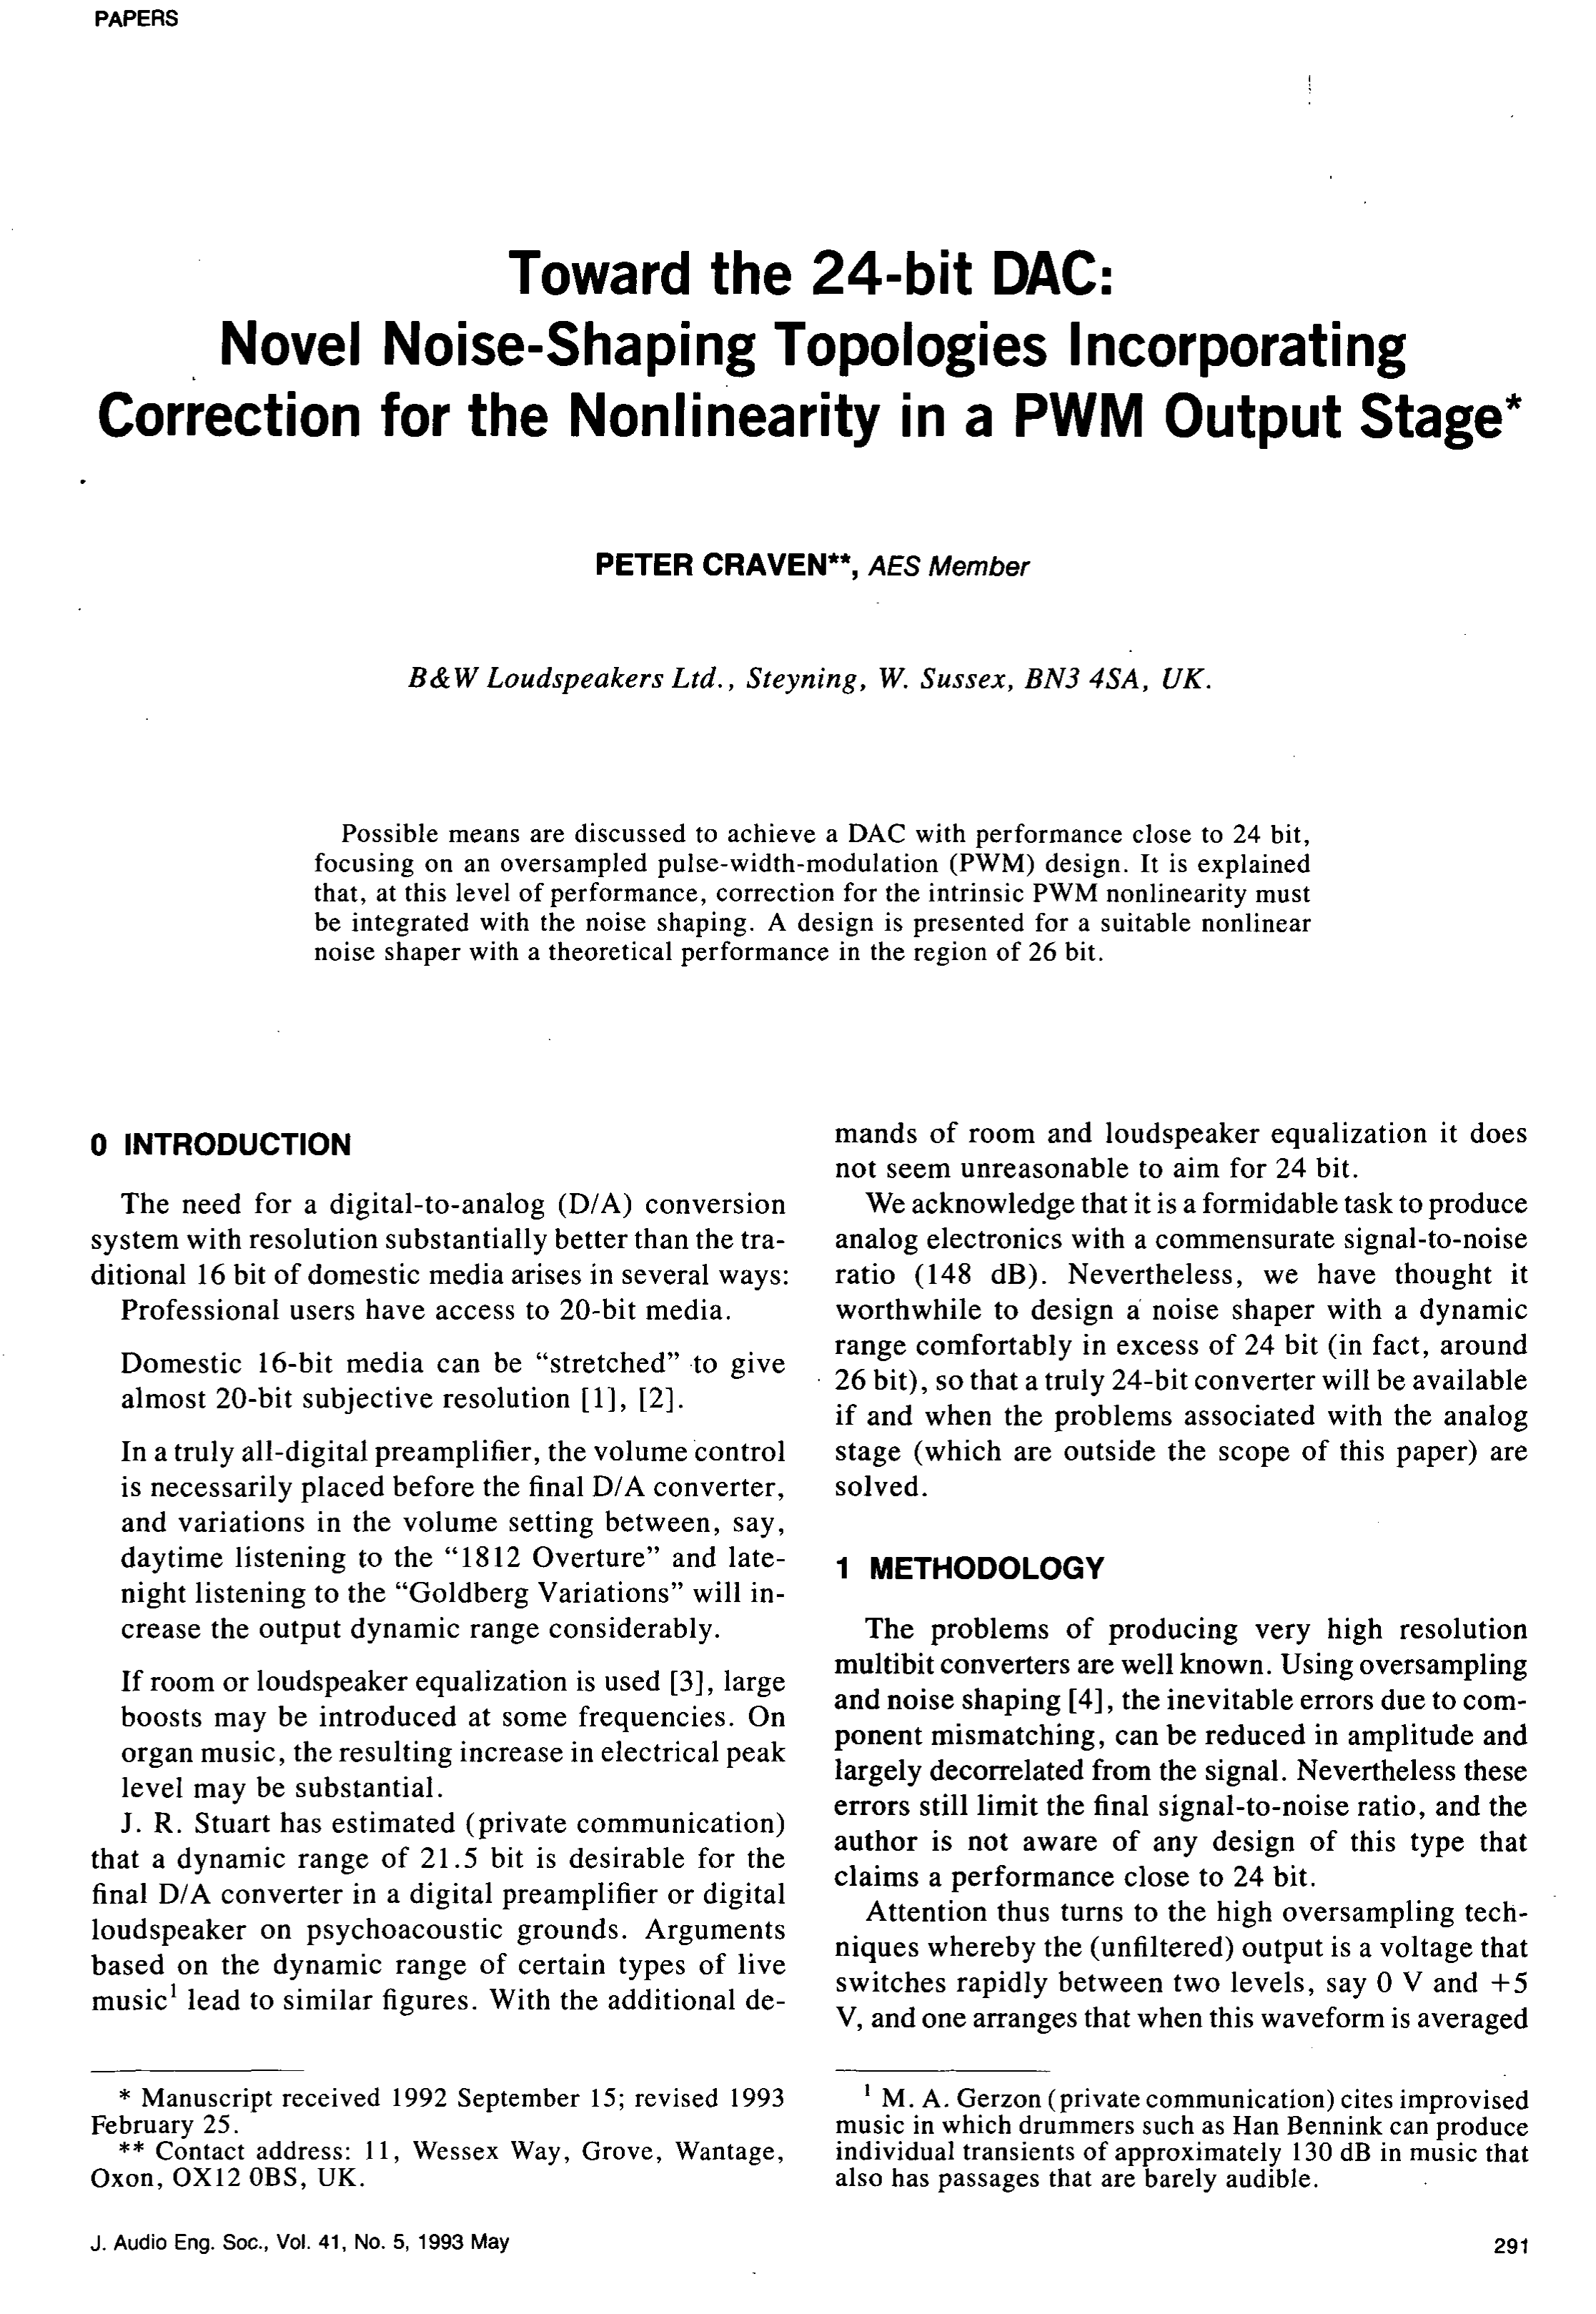 Aes E Library Toward The 24 Bit Dac Novel Noise Shaping Free Download Rg Wiring Diagram Push Pull Topologies Incorporating Correction For Nonlinearity In A Pwm Output Stage